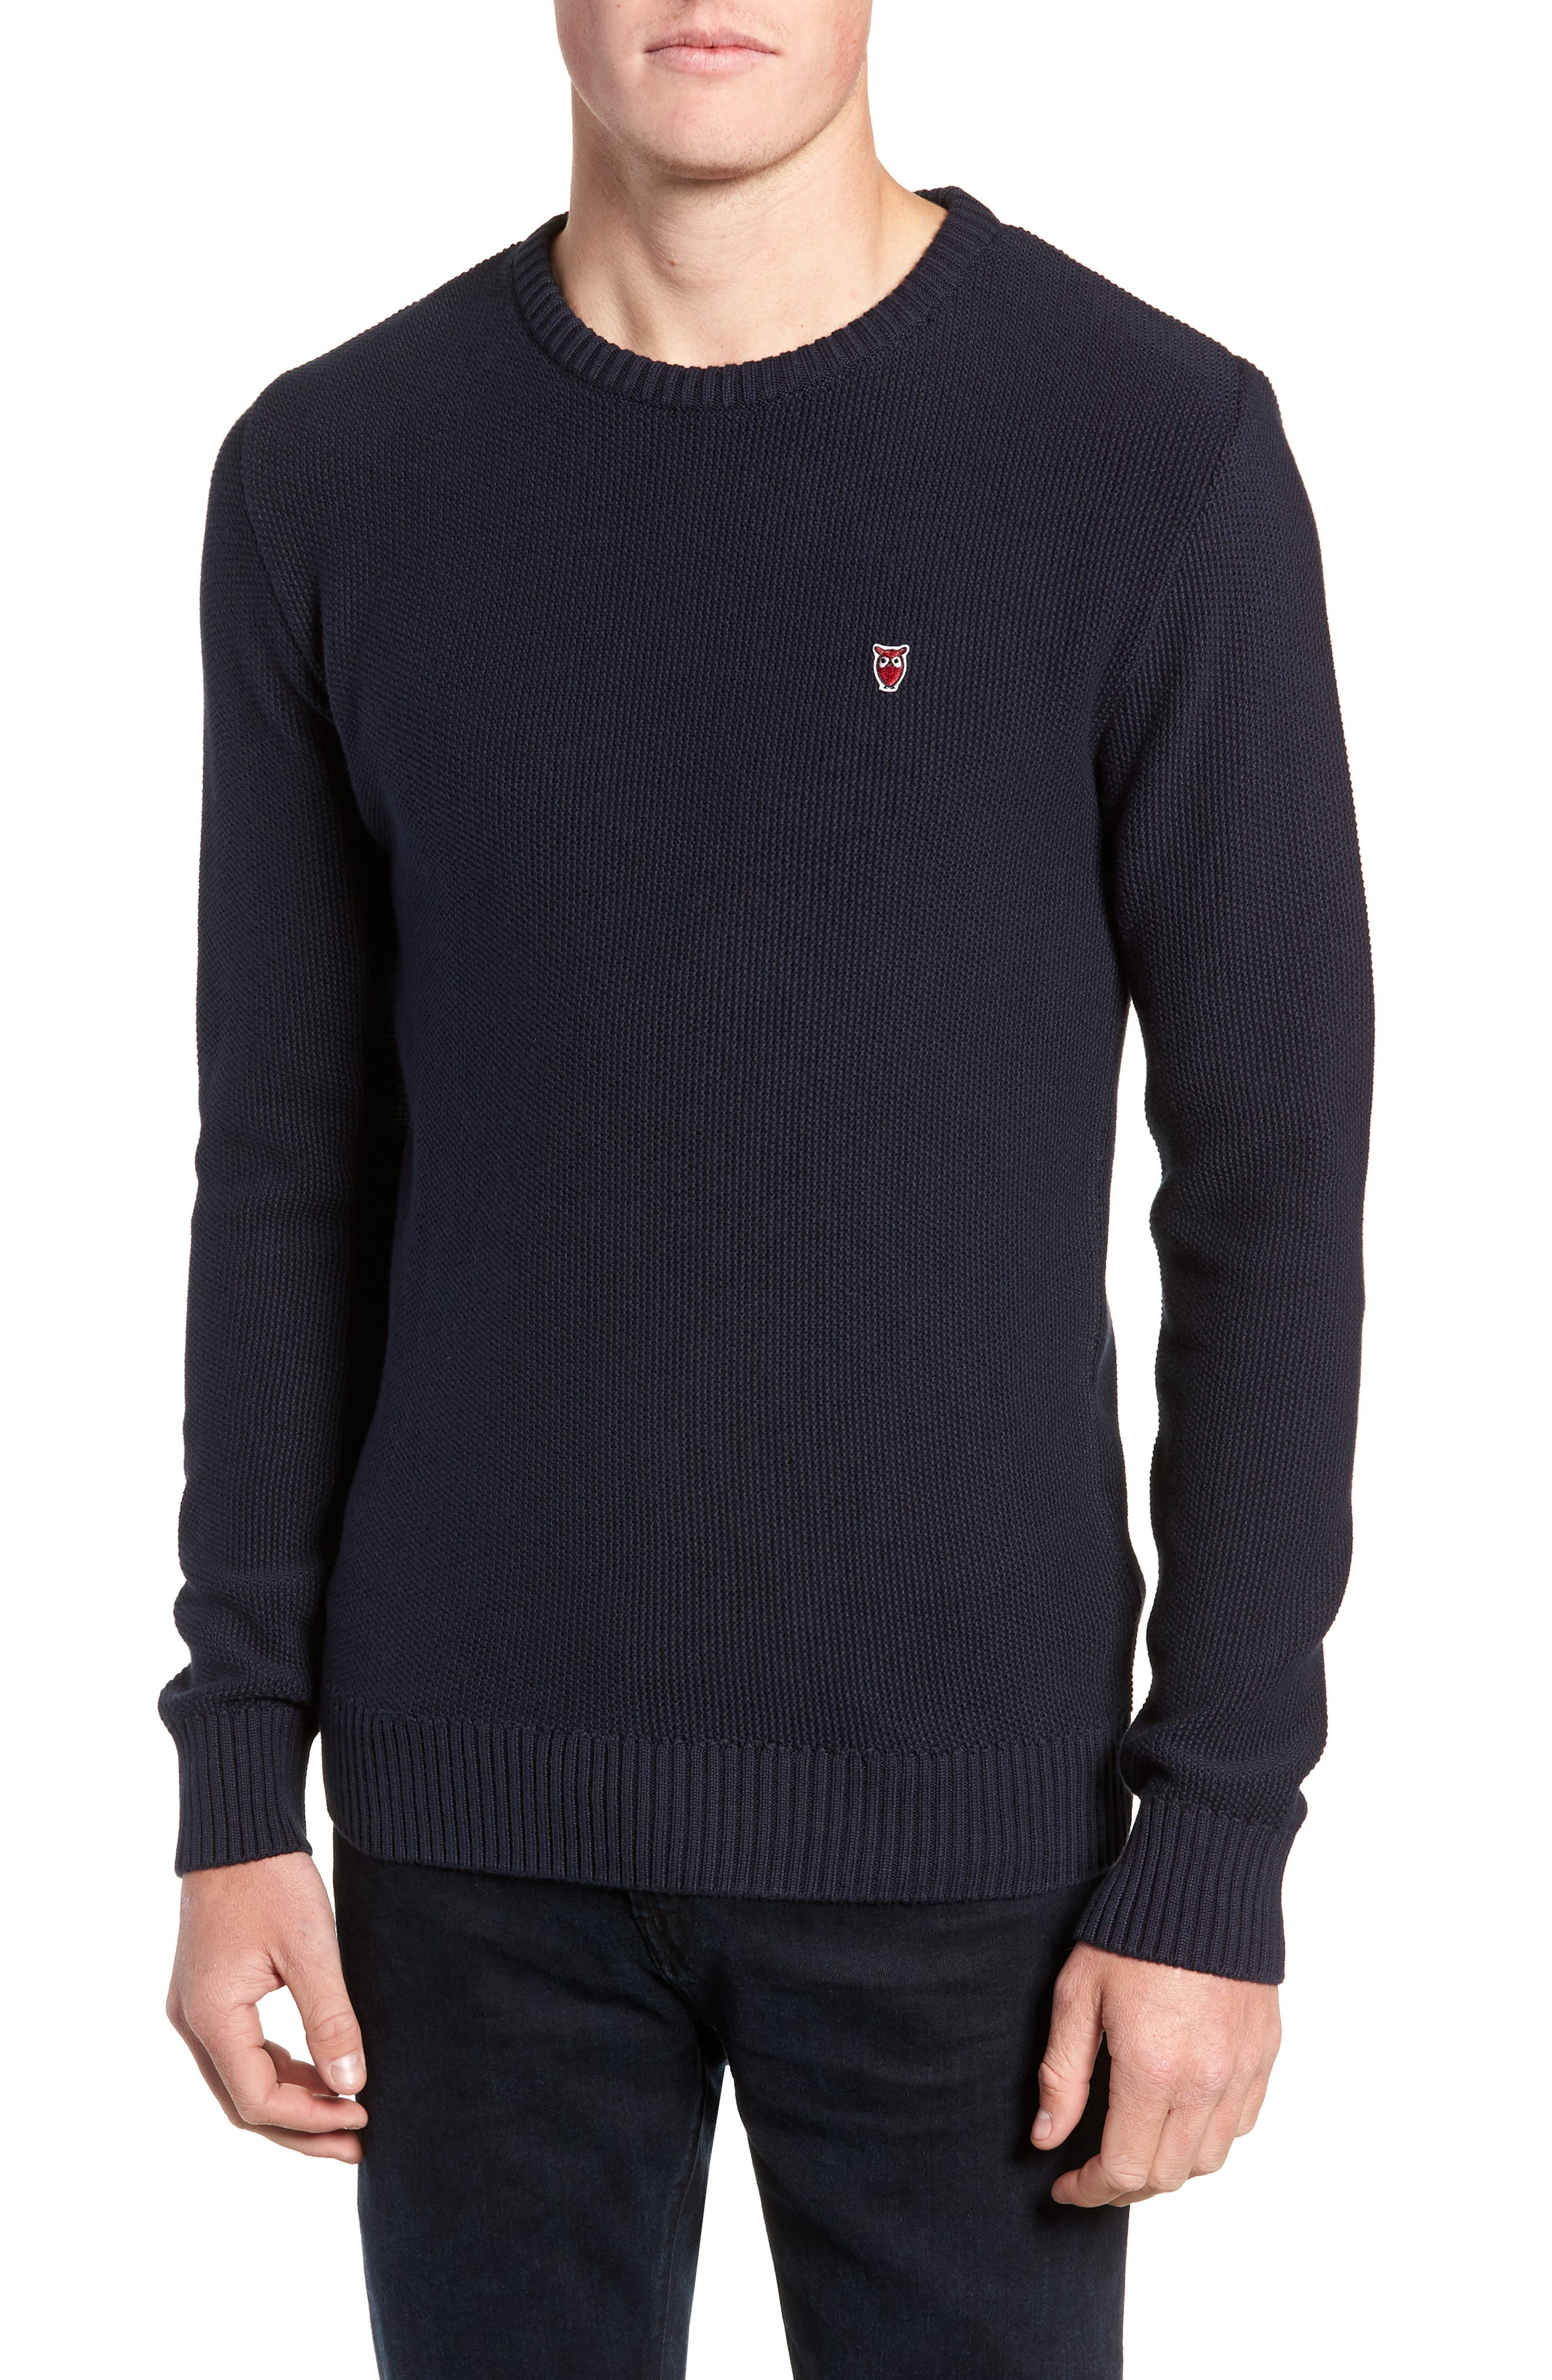 Knowledgecotton Apparel Owl Textured Sweater, Blue